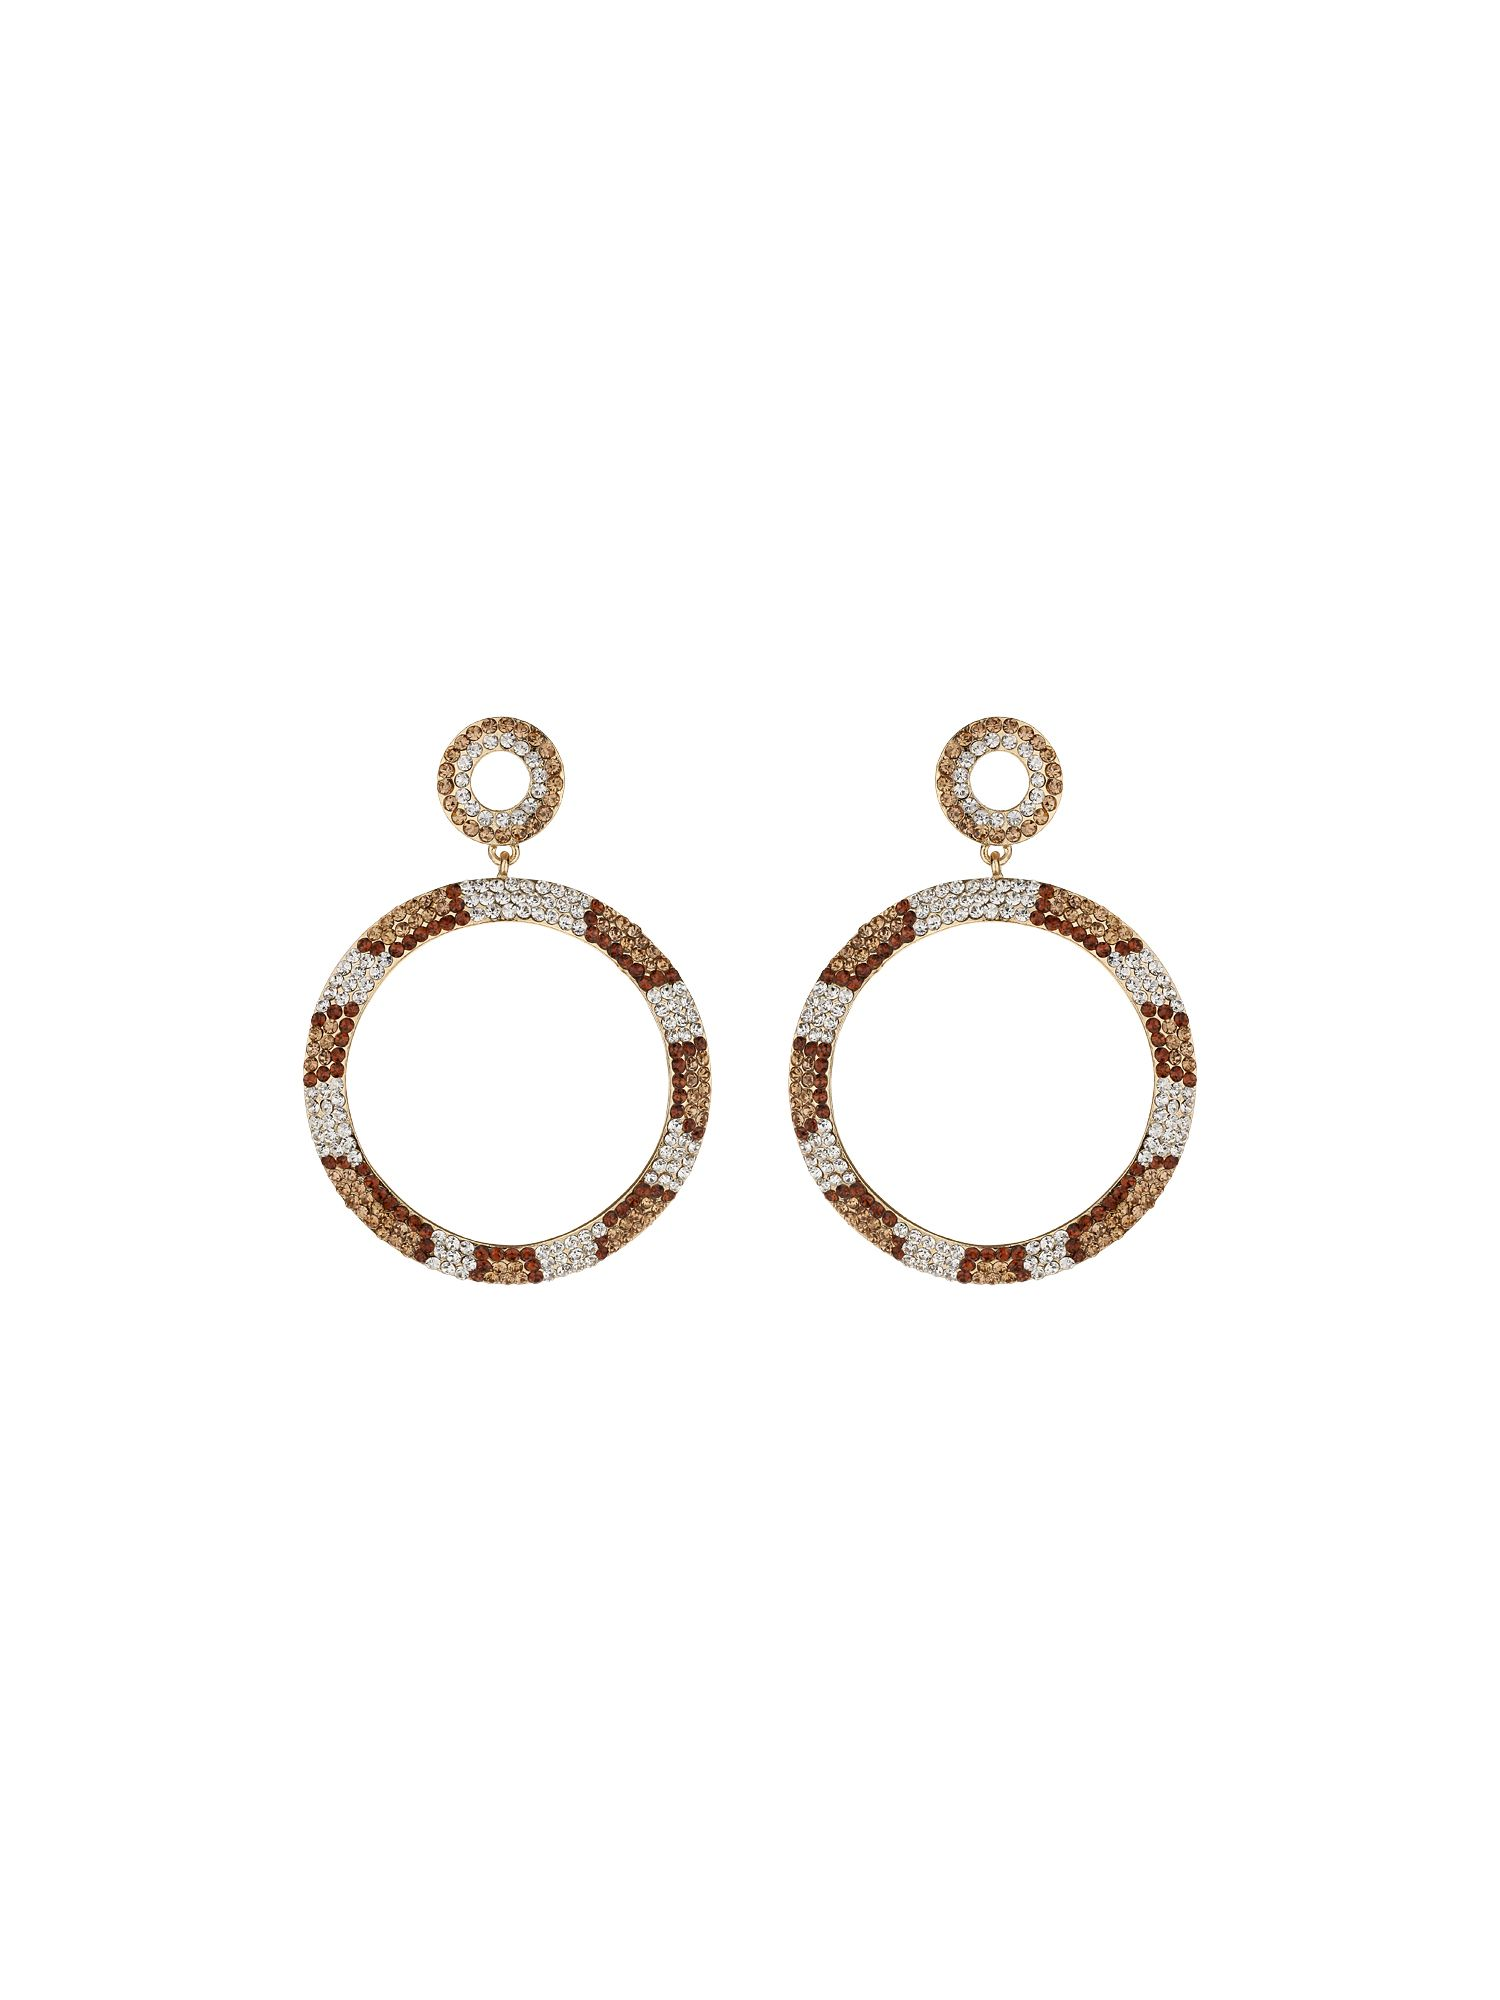 Twisted circle earrings